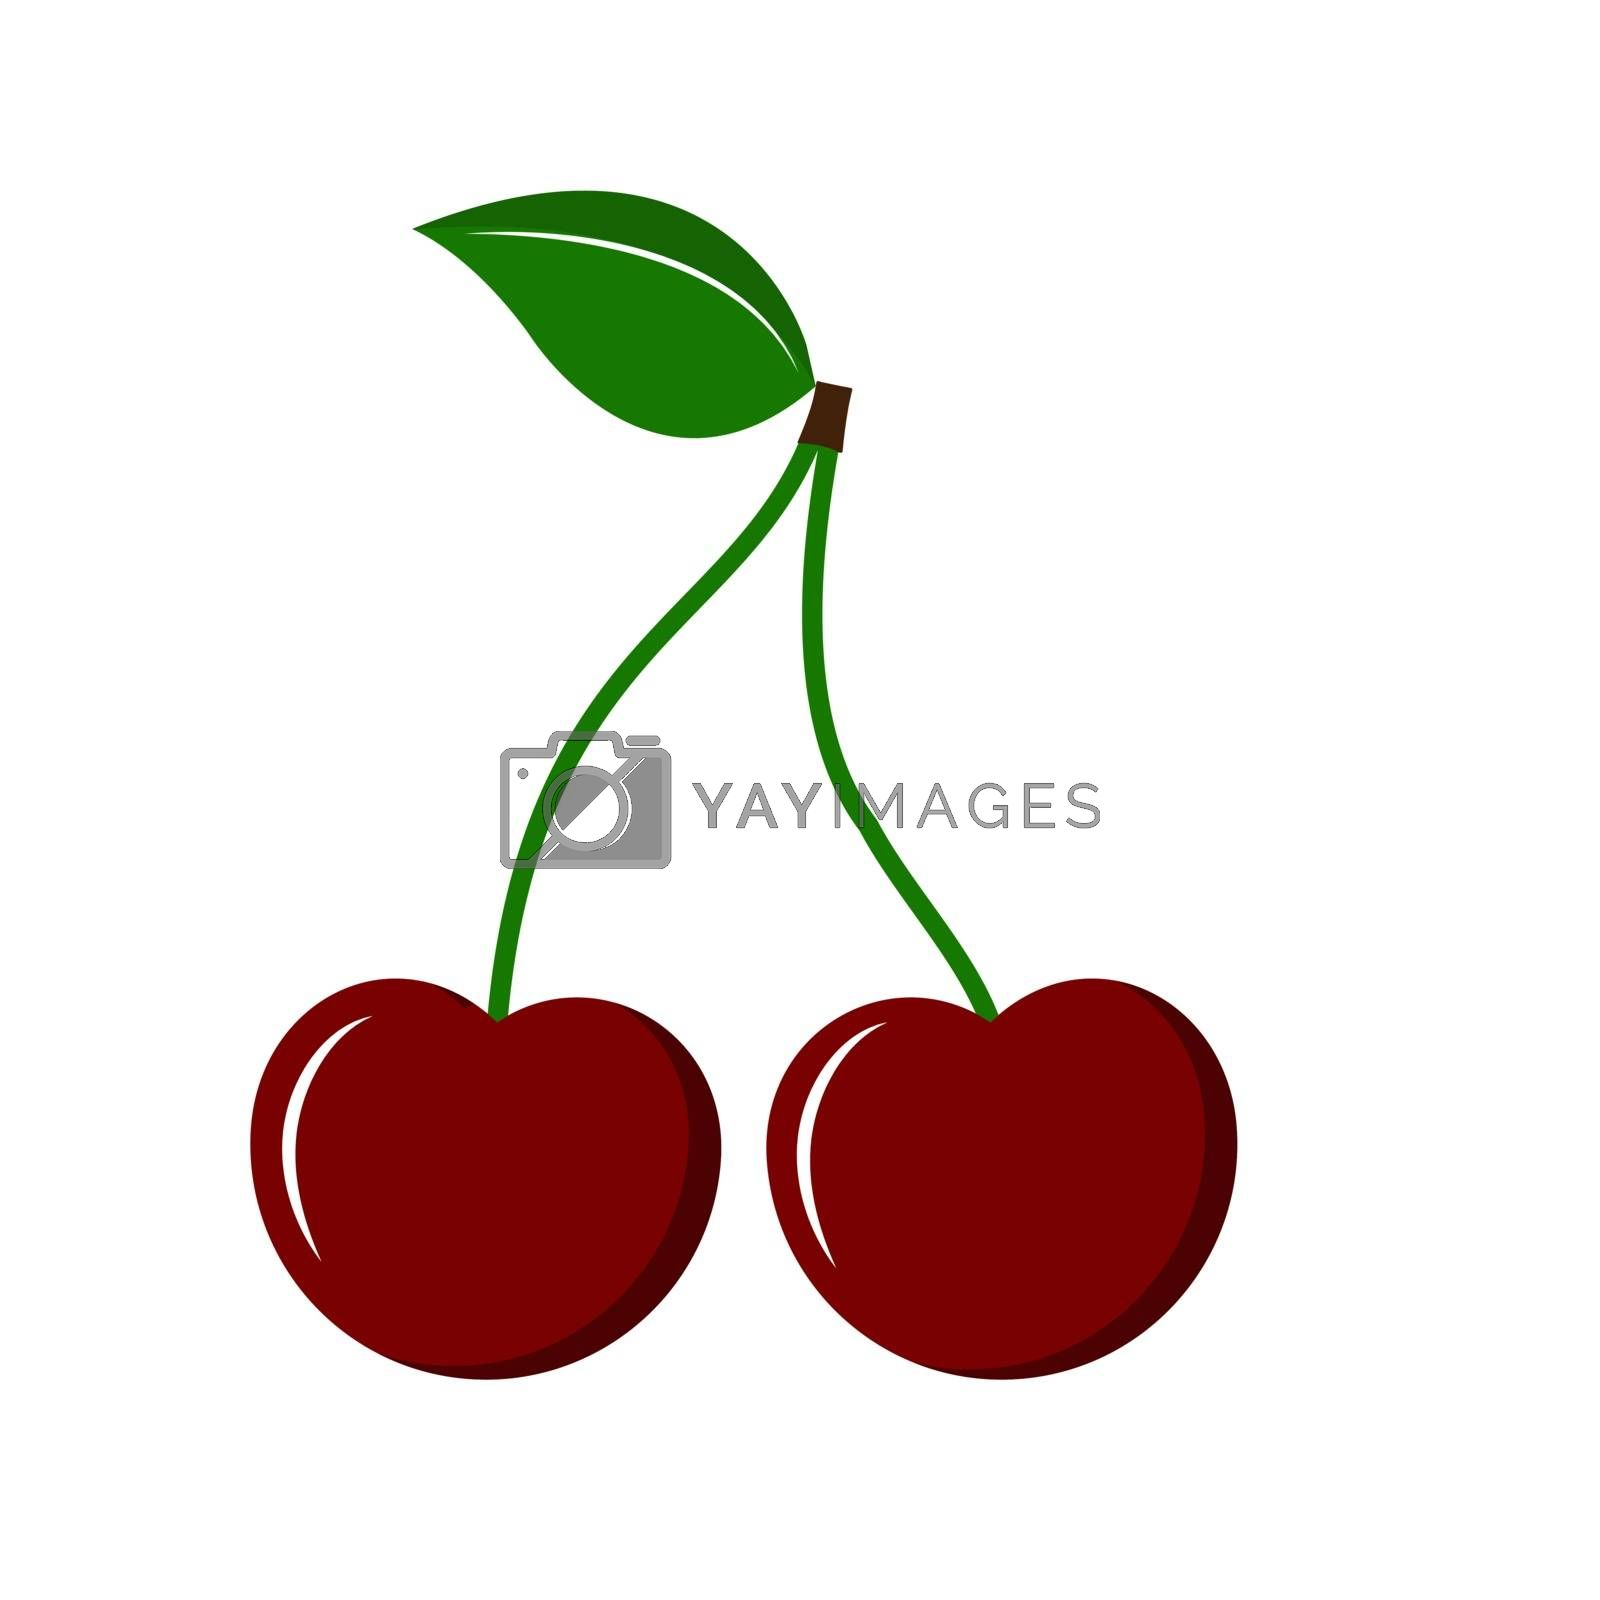 Two cherries on stems with a leaf, flat simple design